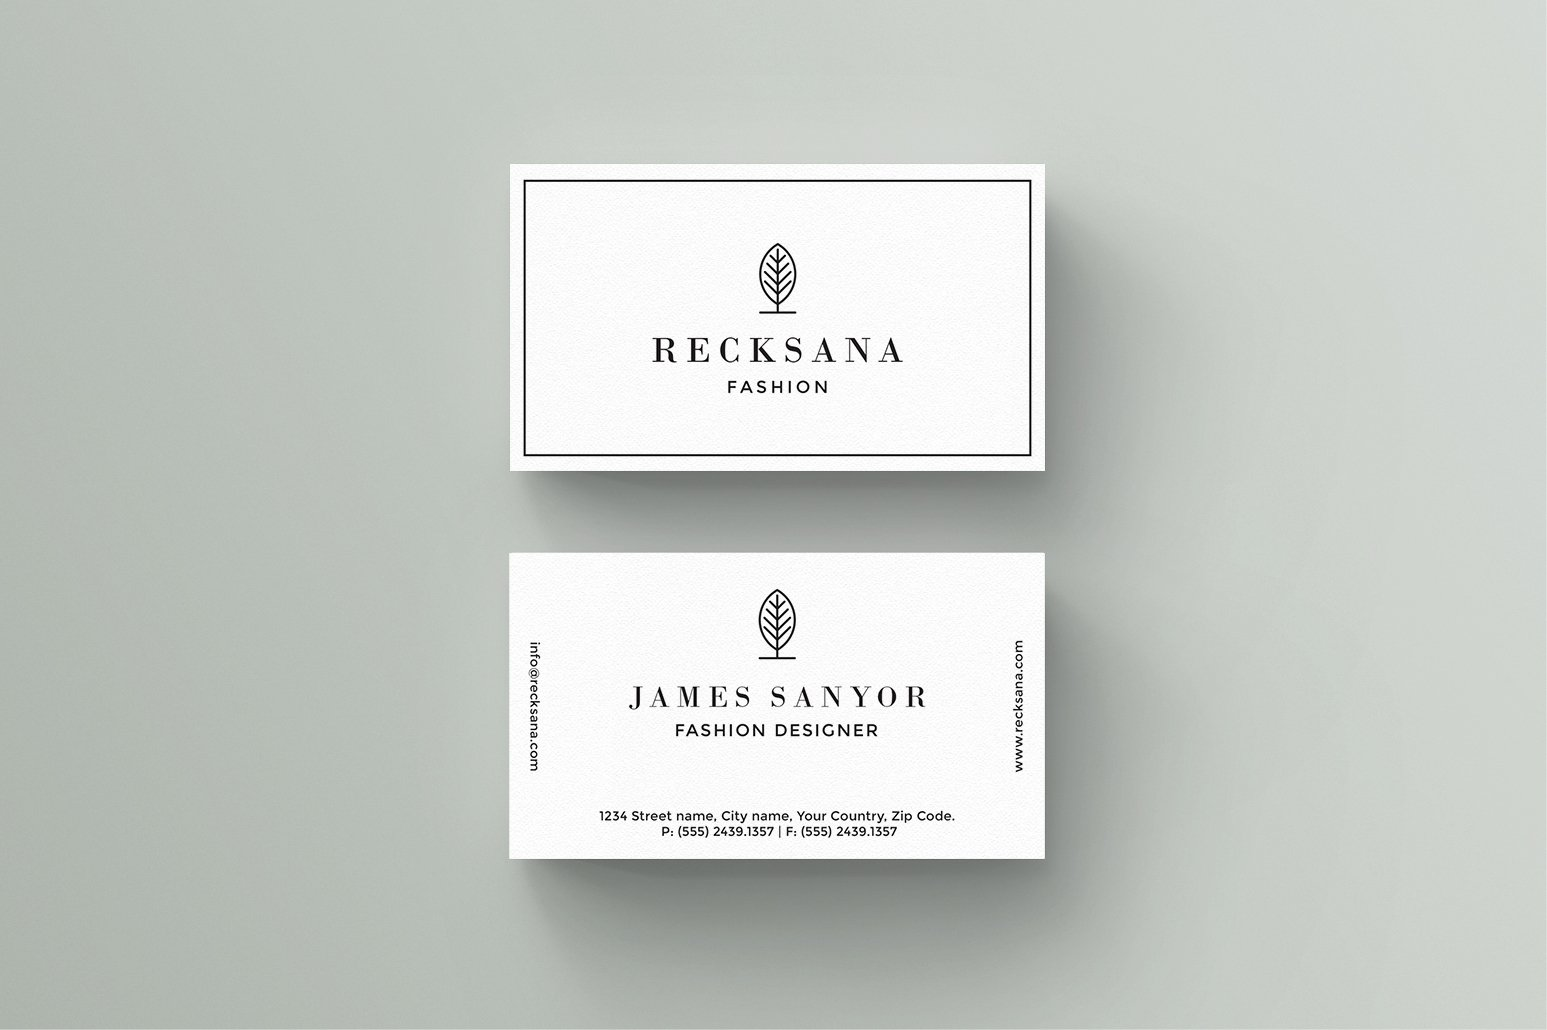 J u n i p e r business card template business card templates recksana business card template accmission Gallery